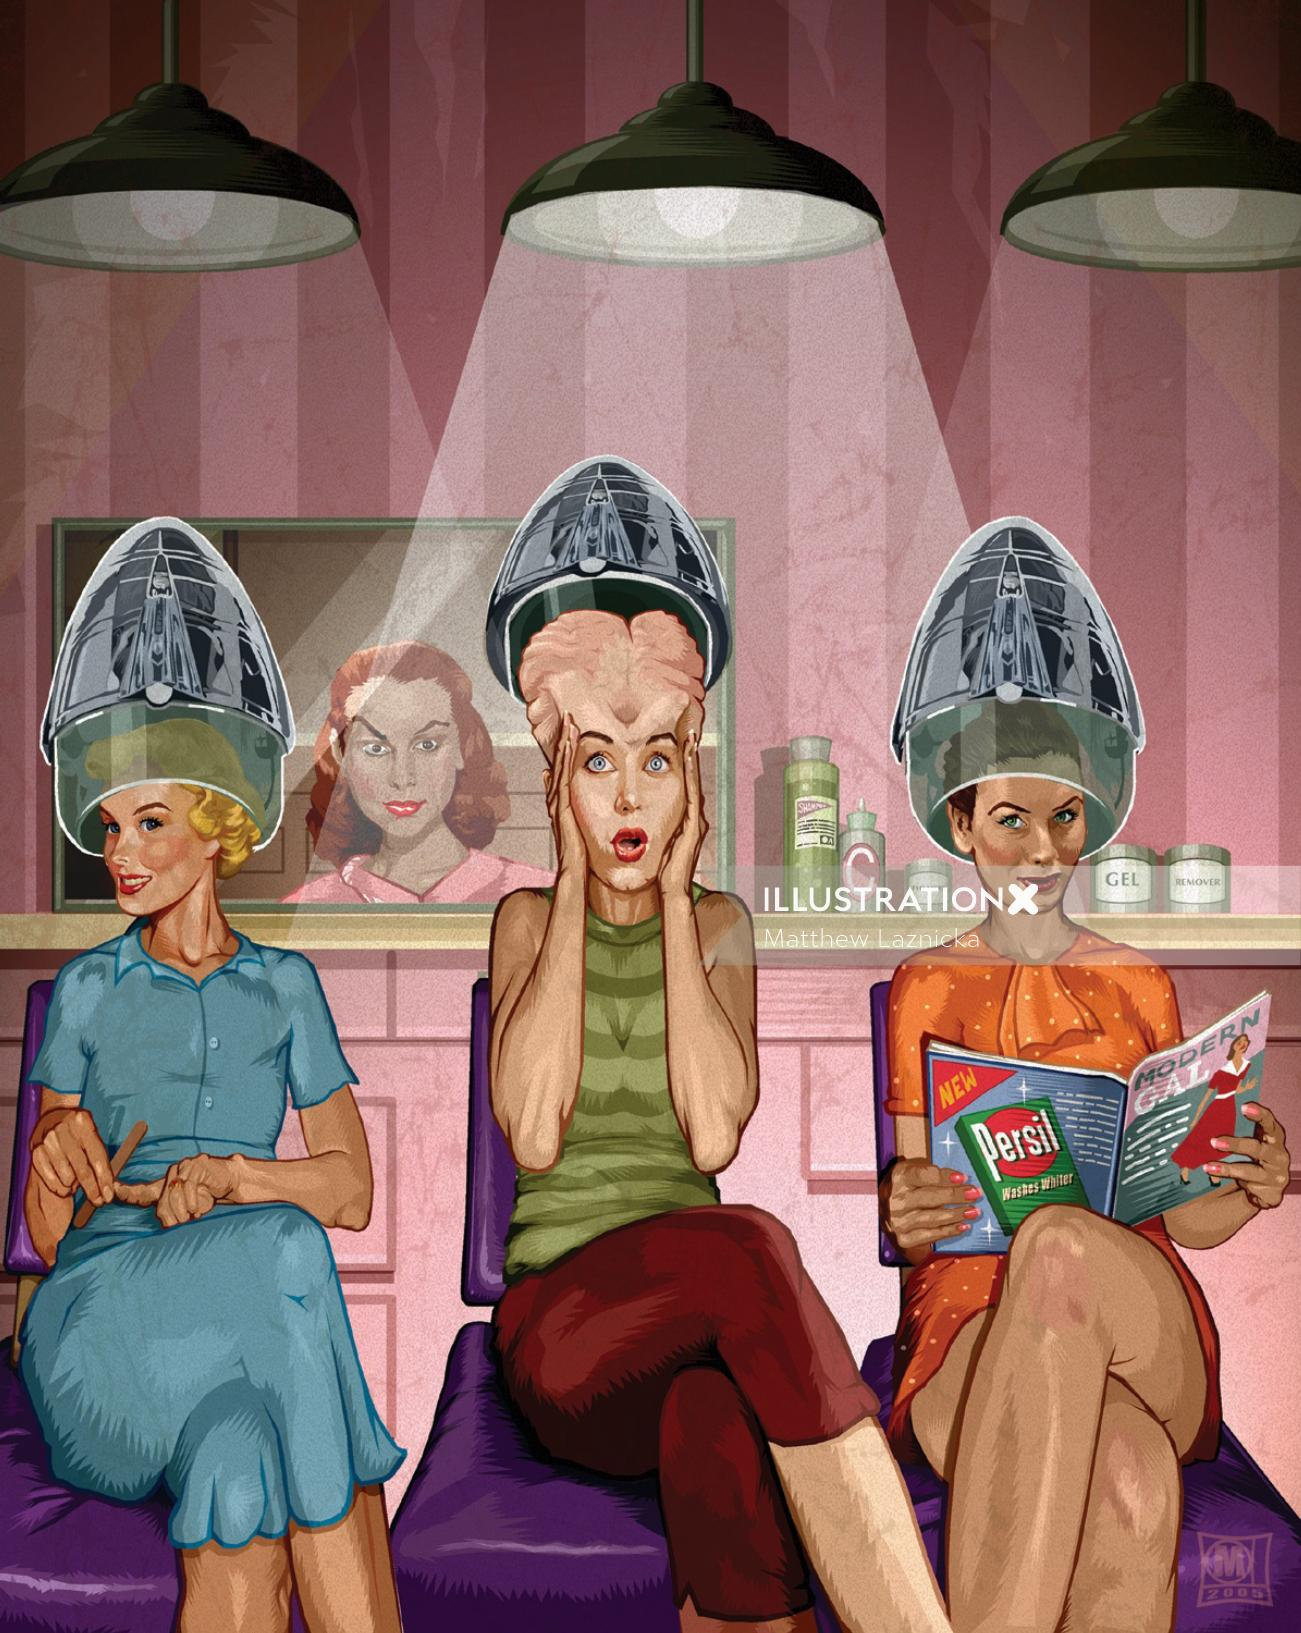 Retro art image of ladies in saloon